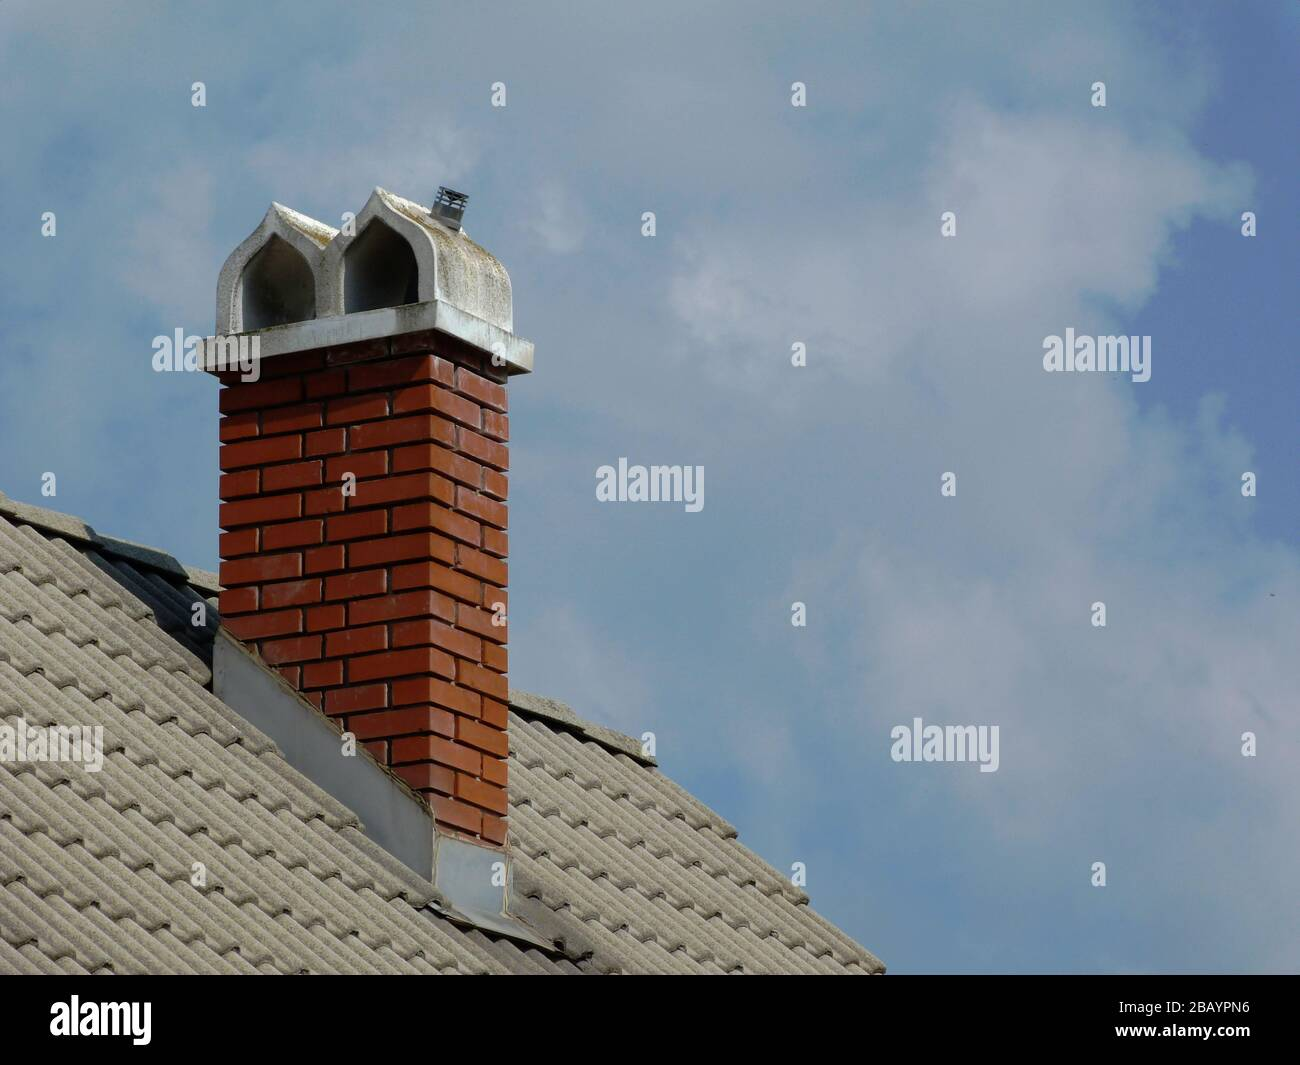 Concrete Roof Tiles High Resolution Stock Photography And Images Alamy